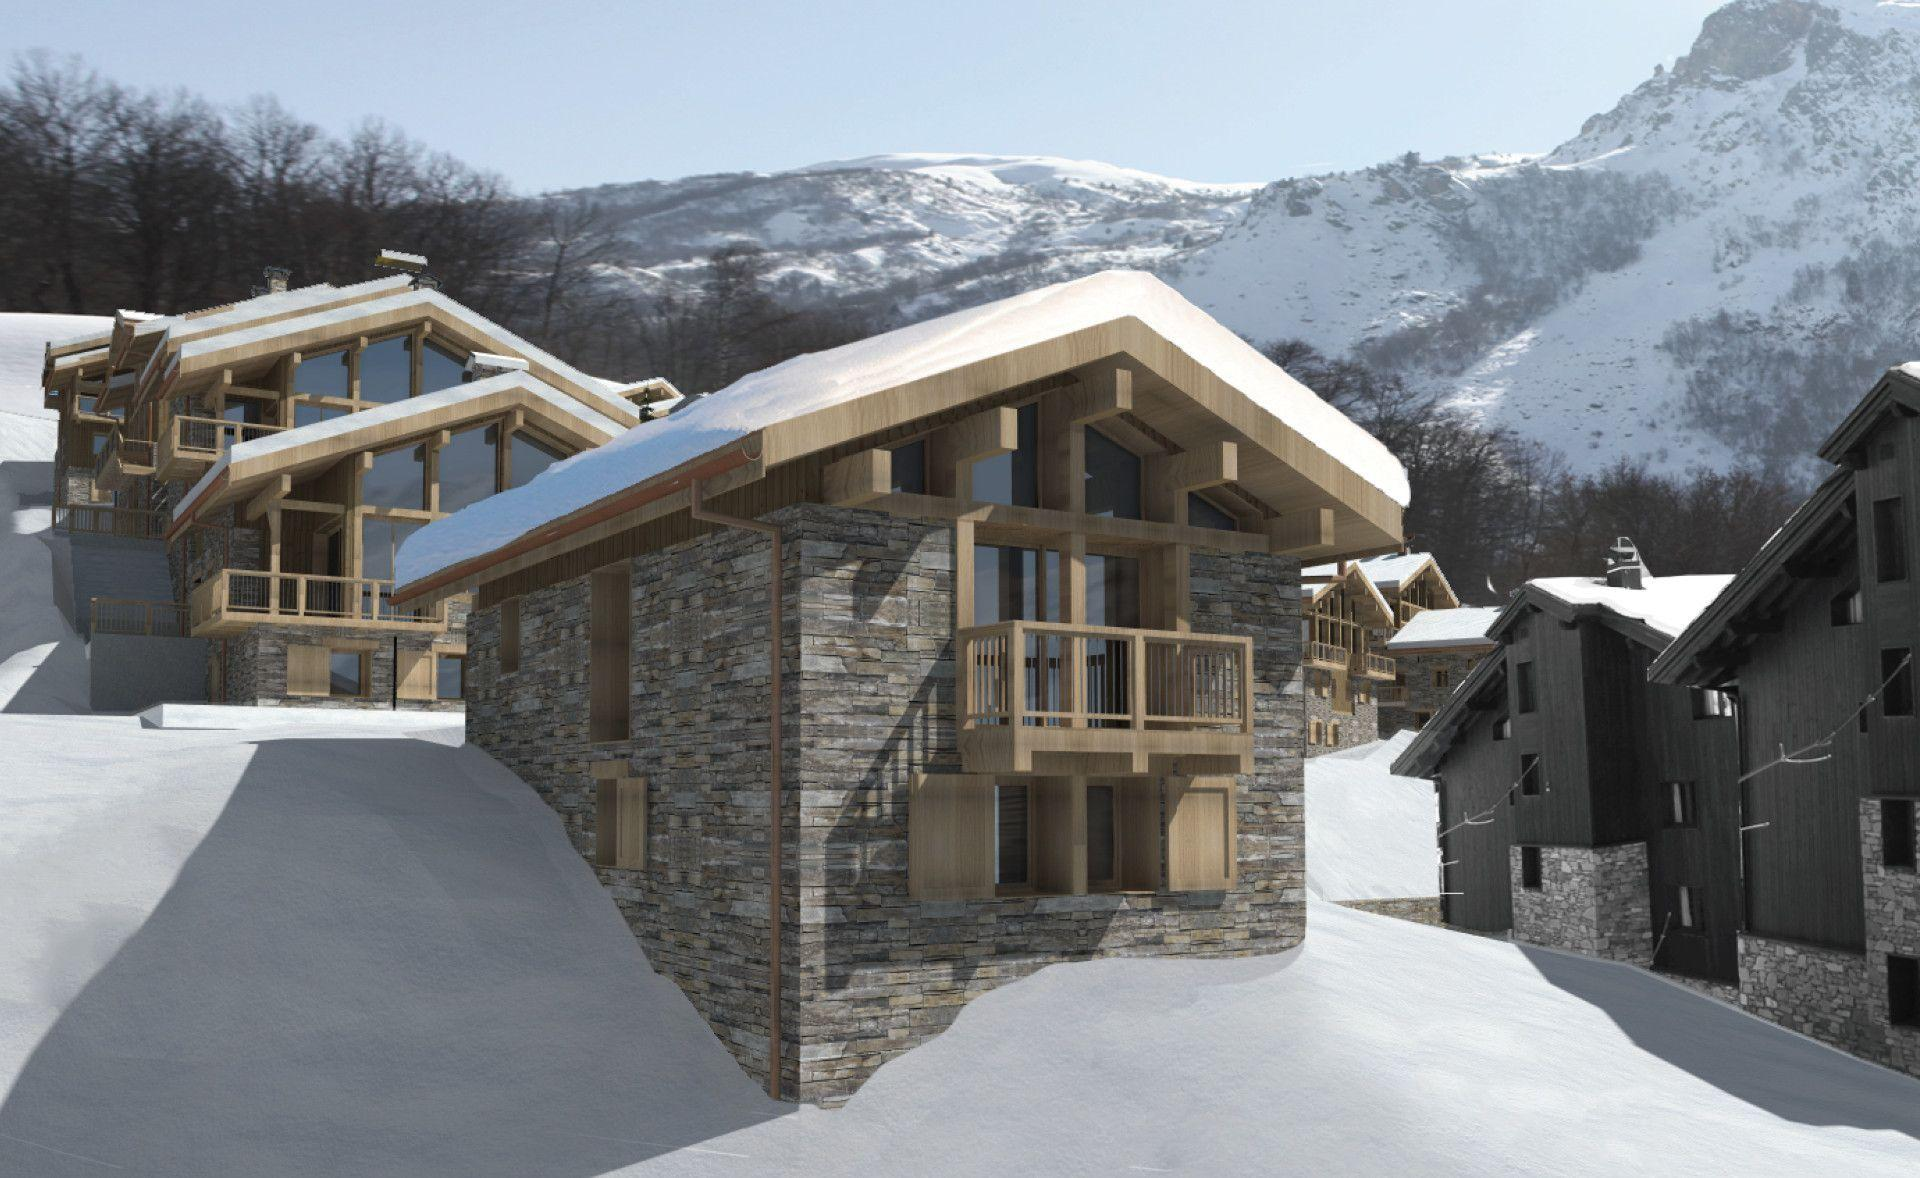 NEW CHALET IDEALLY LOCATED